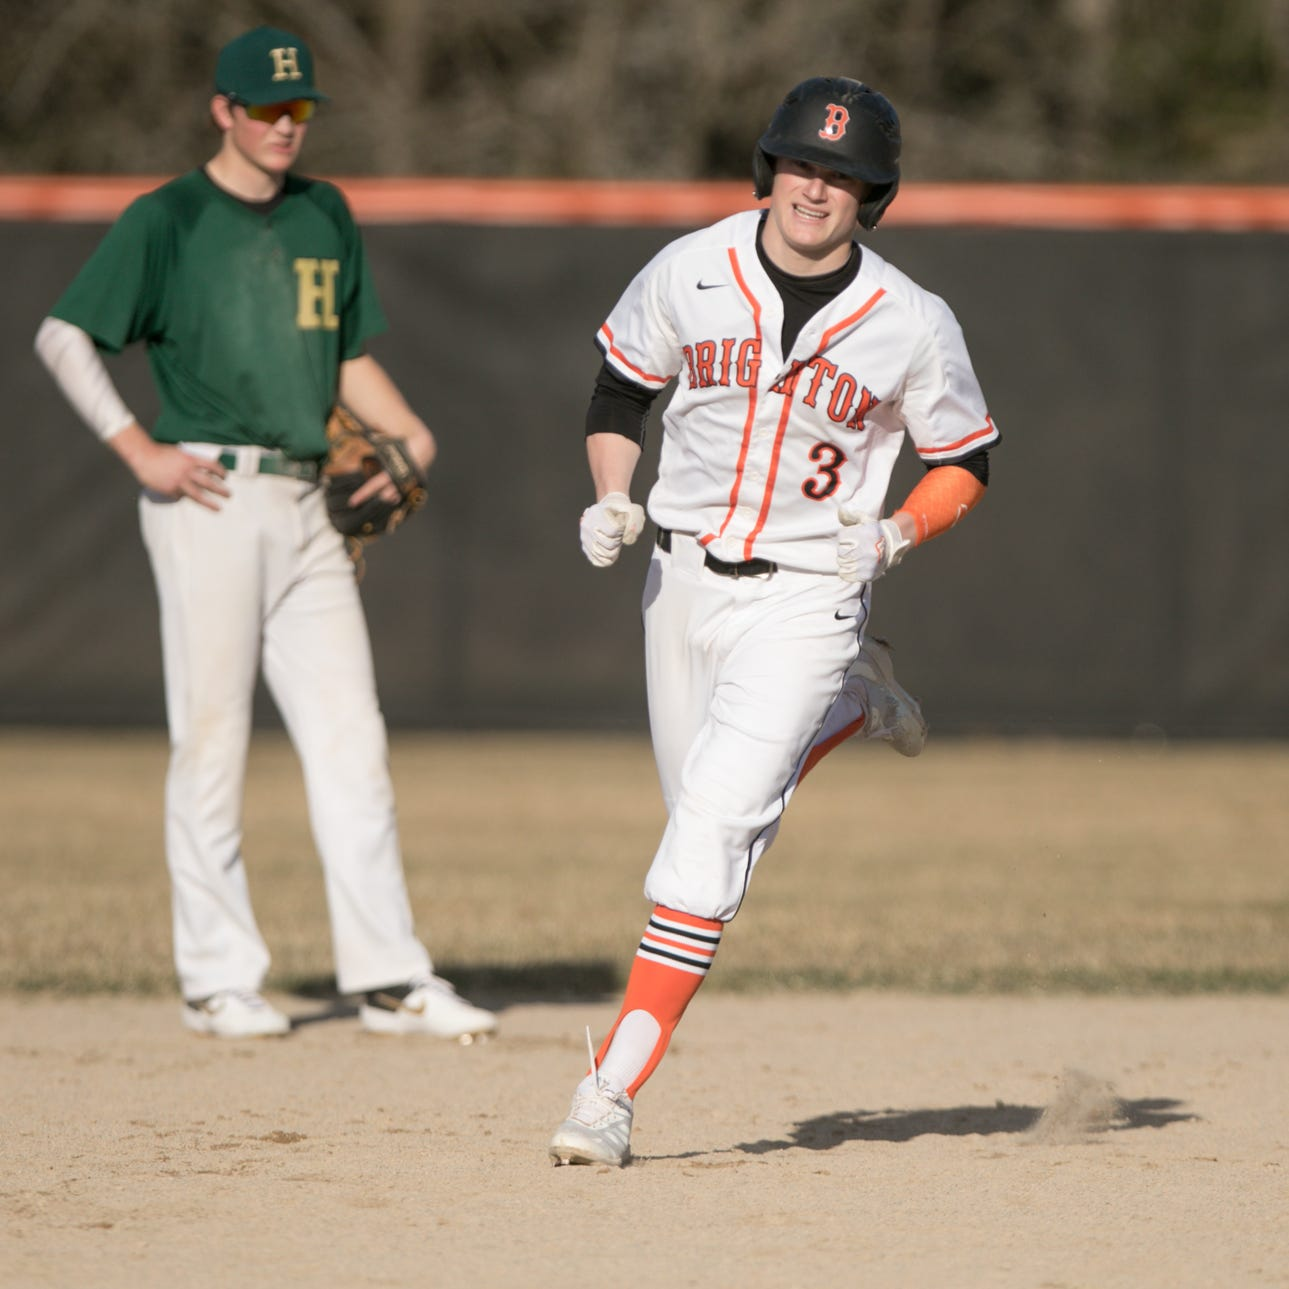 Zach Hopman homers twice, Brighton baseball overpowers Howell